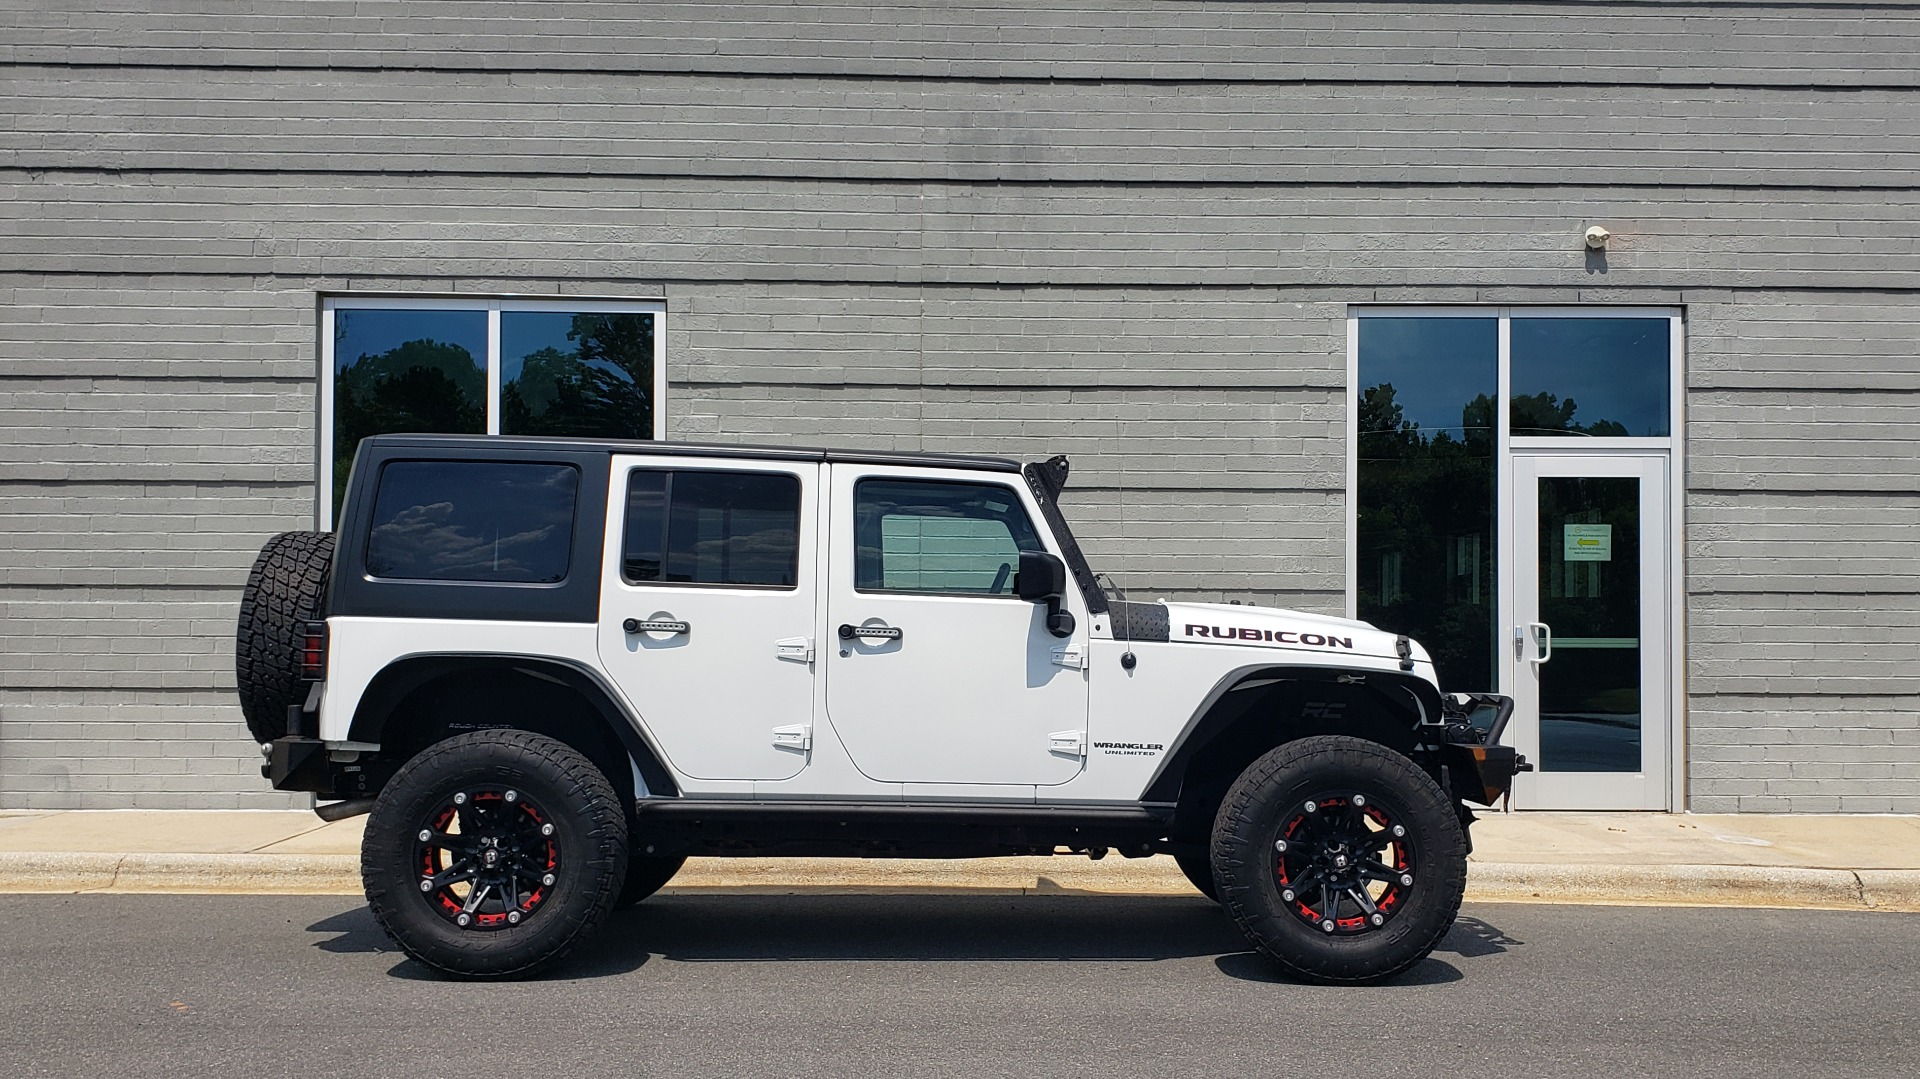 Used 2017 Jeep WRANGLER UNLIMITED RUBICON HARD ROCK 4X4 / 3.6L V6 / 5-SPD AUTO / NAV / REMOTE START for sale Sold at Formula Imports in Charlotte NC 28227 6